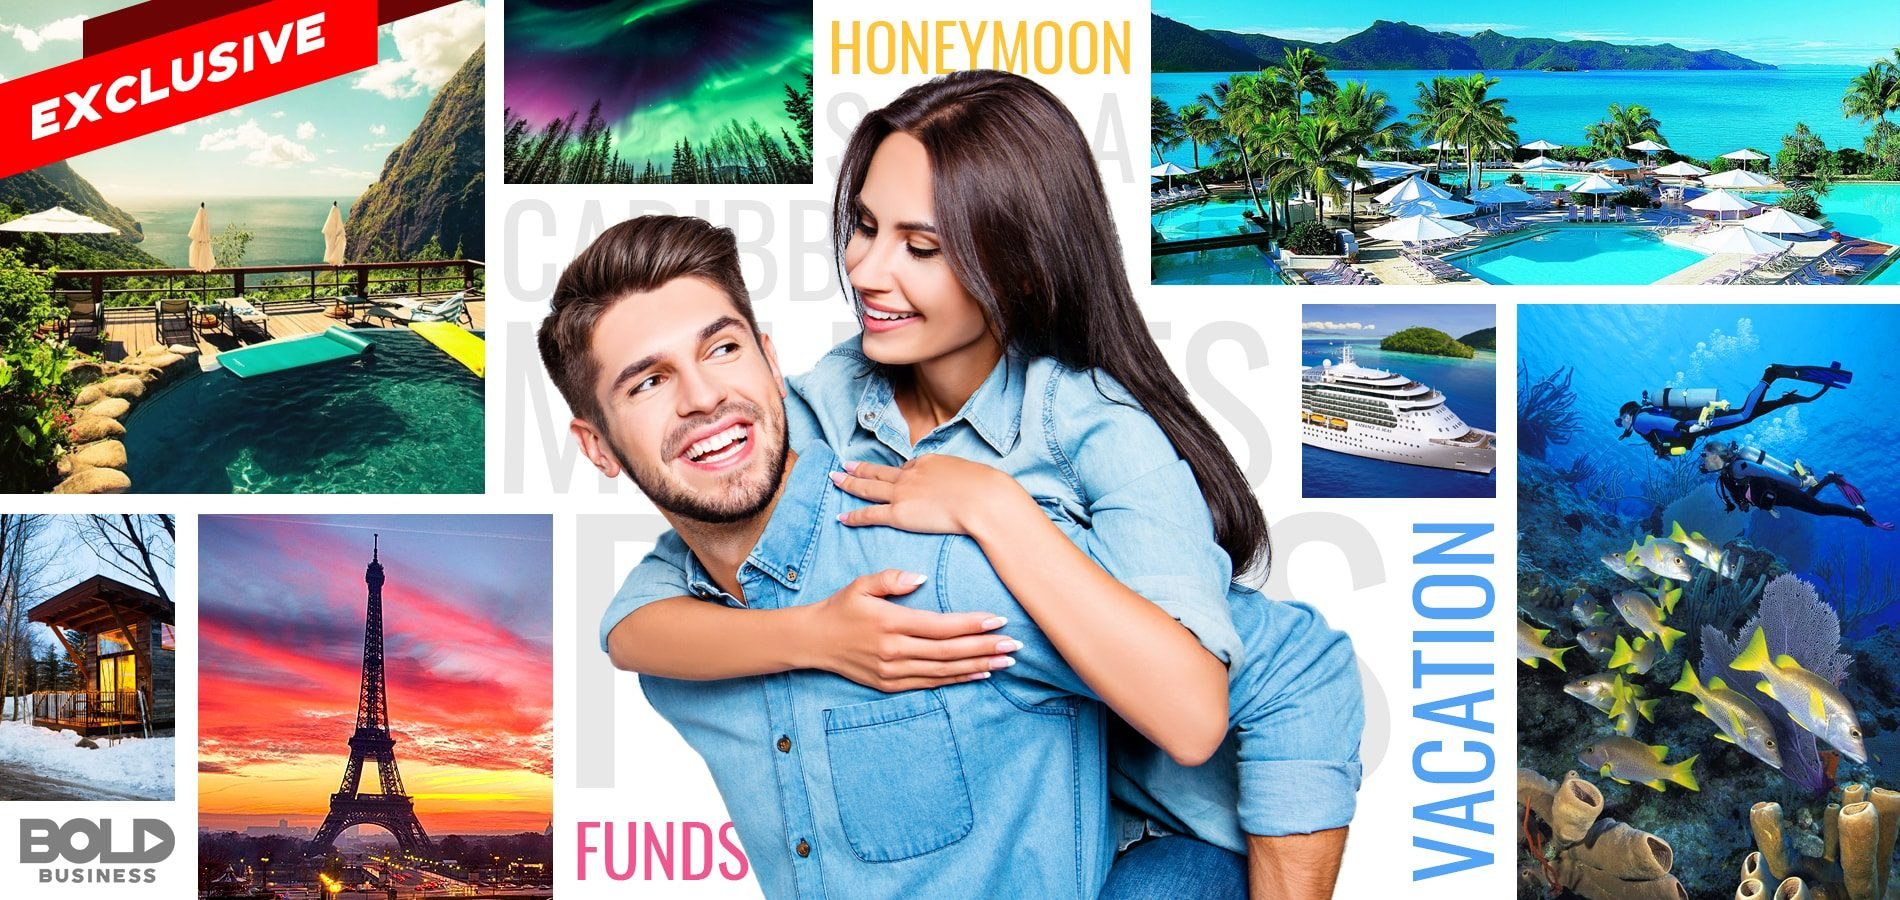 a couple and photos of honeymoon destinations